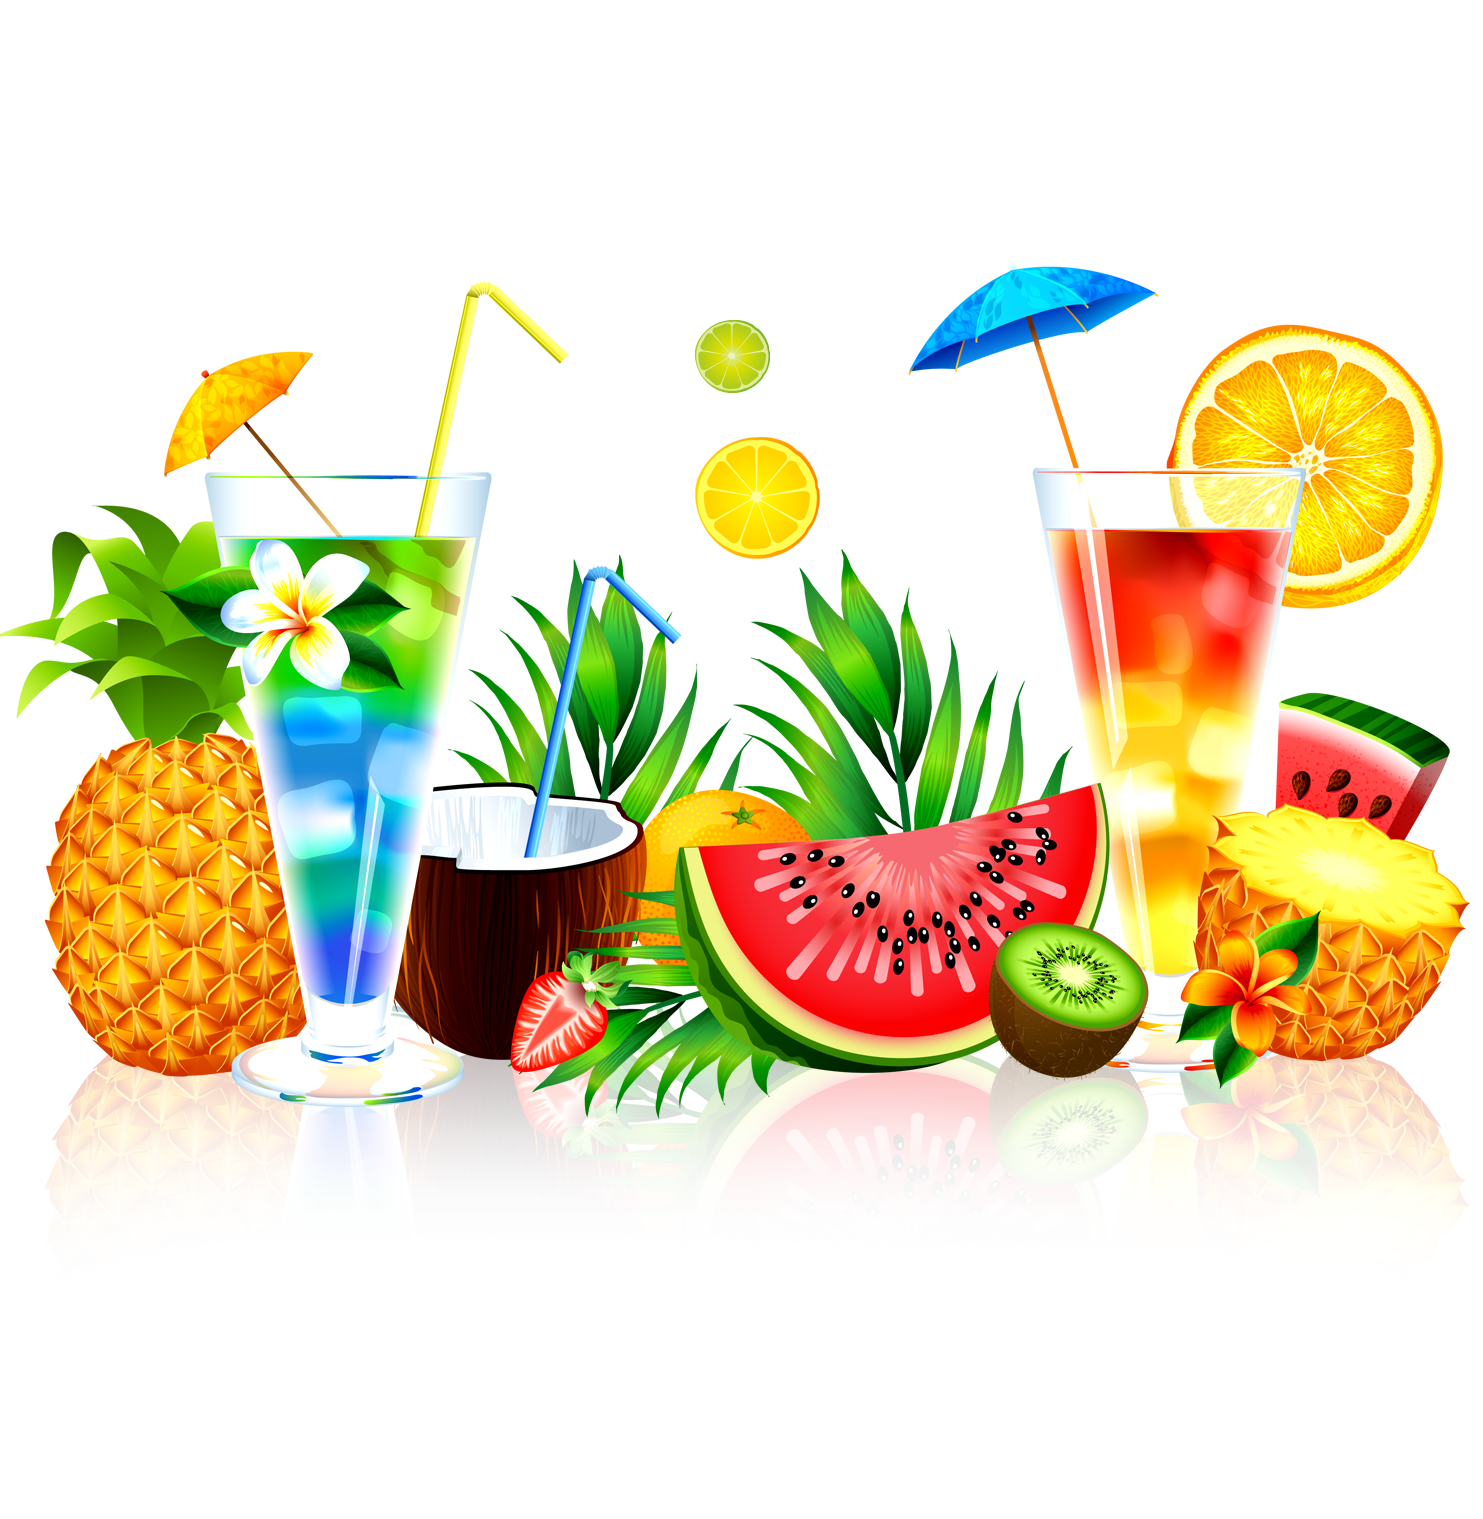 Lime clipart summer fruit. Juice watermelon pineapple transprent